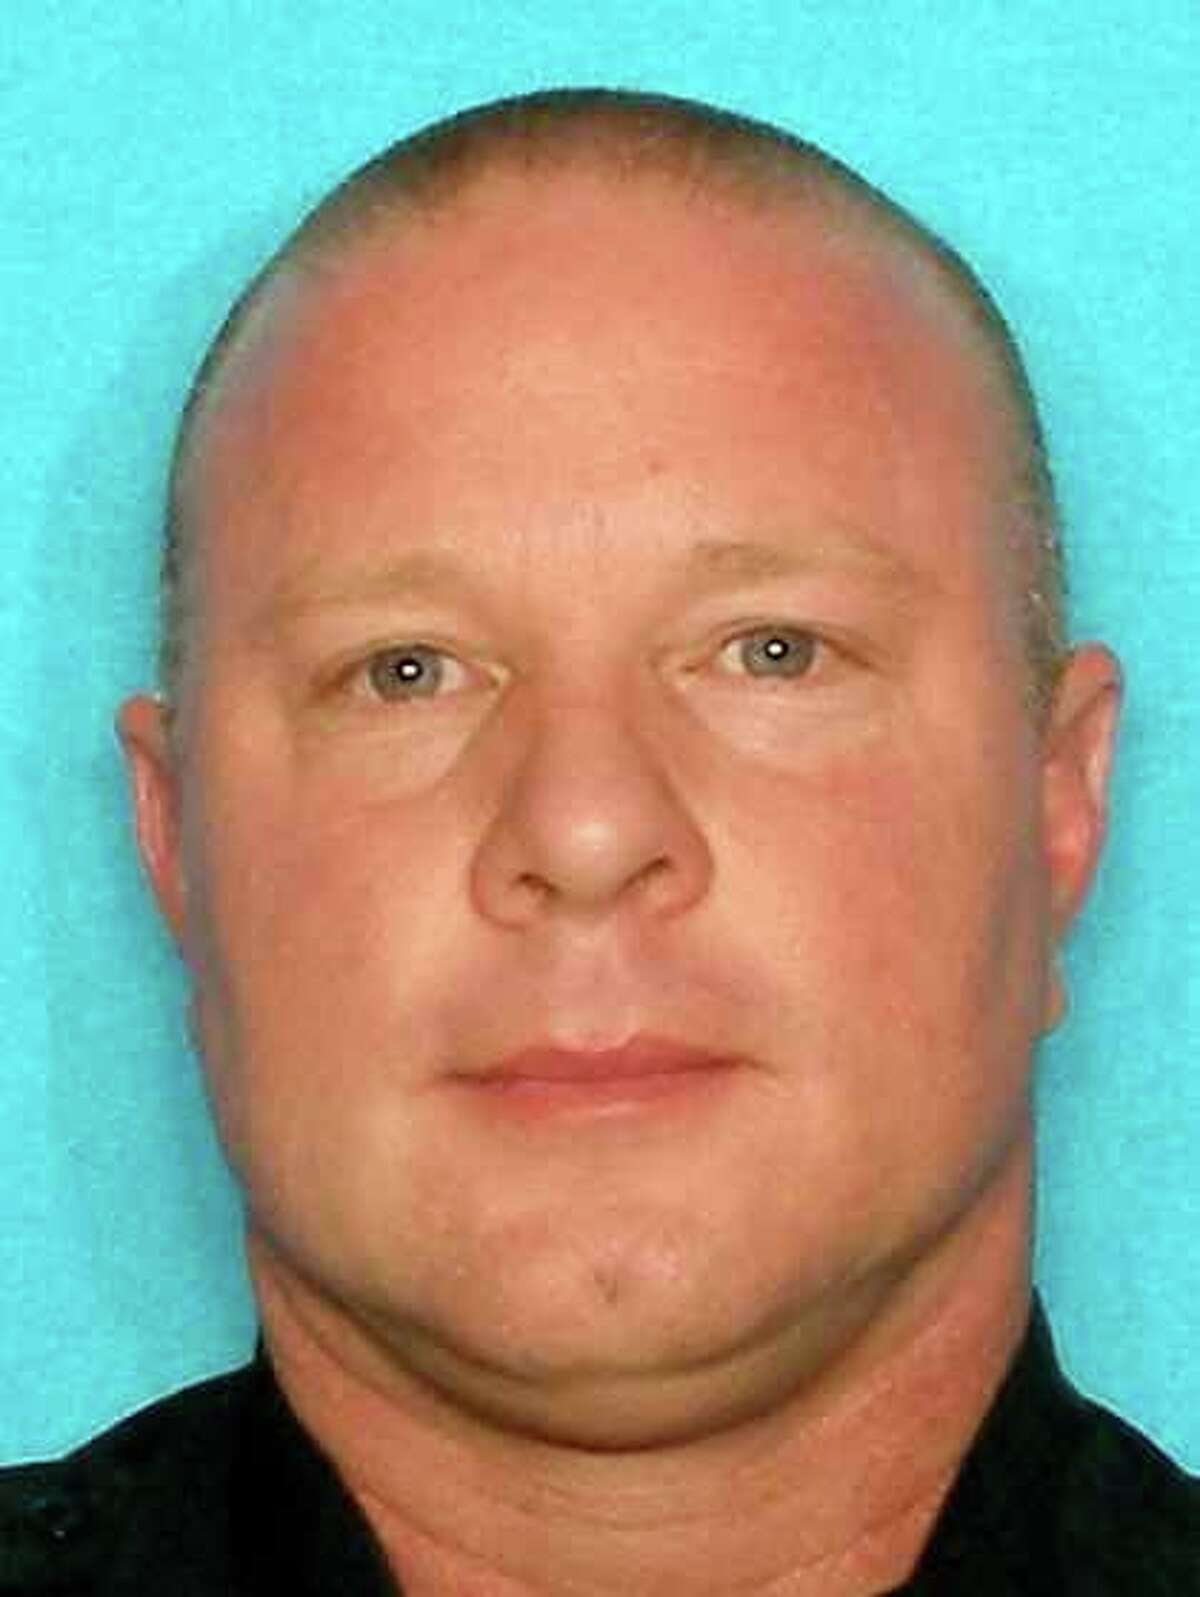 Baytown police Officer John Stewart Beasley went missing Thursday, and his body was found Tuesday in Cove.